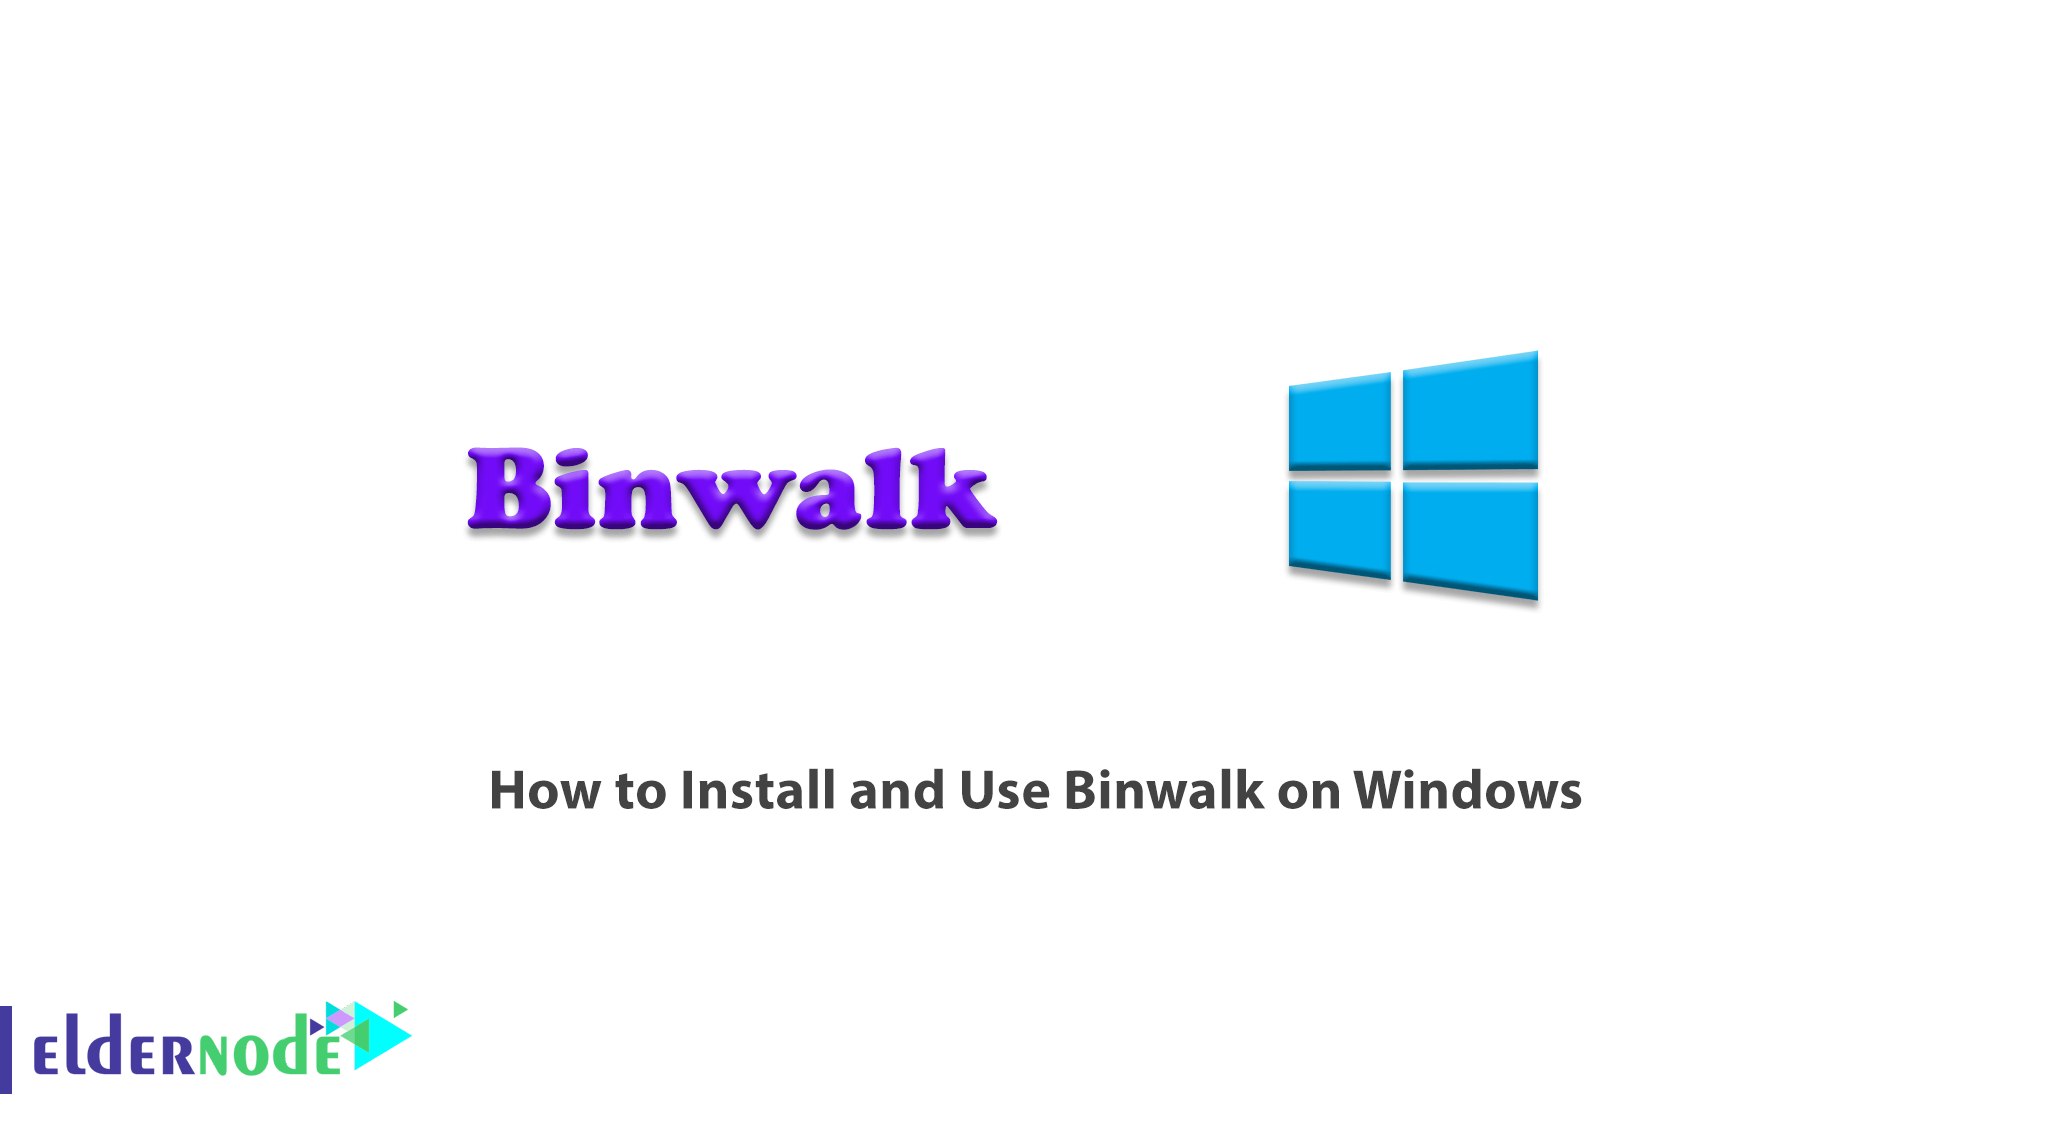 How to Install and Use Binwalk on Windows